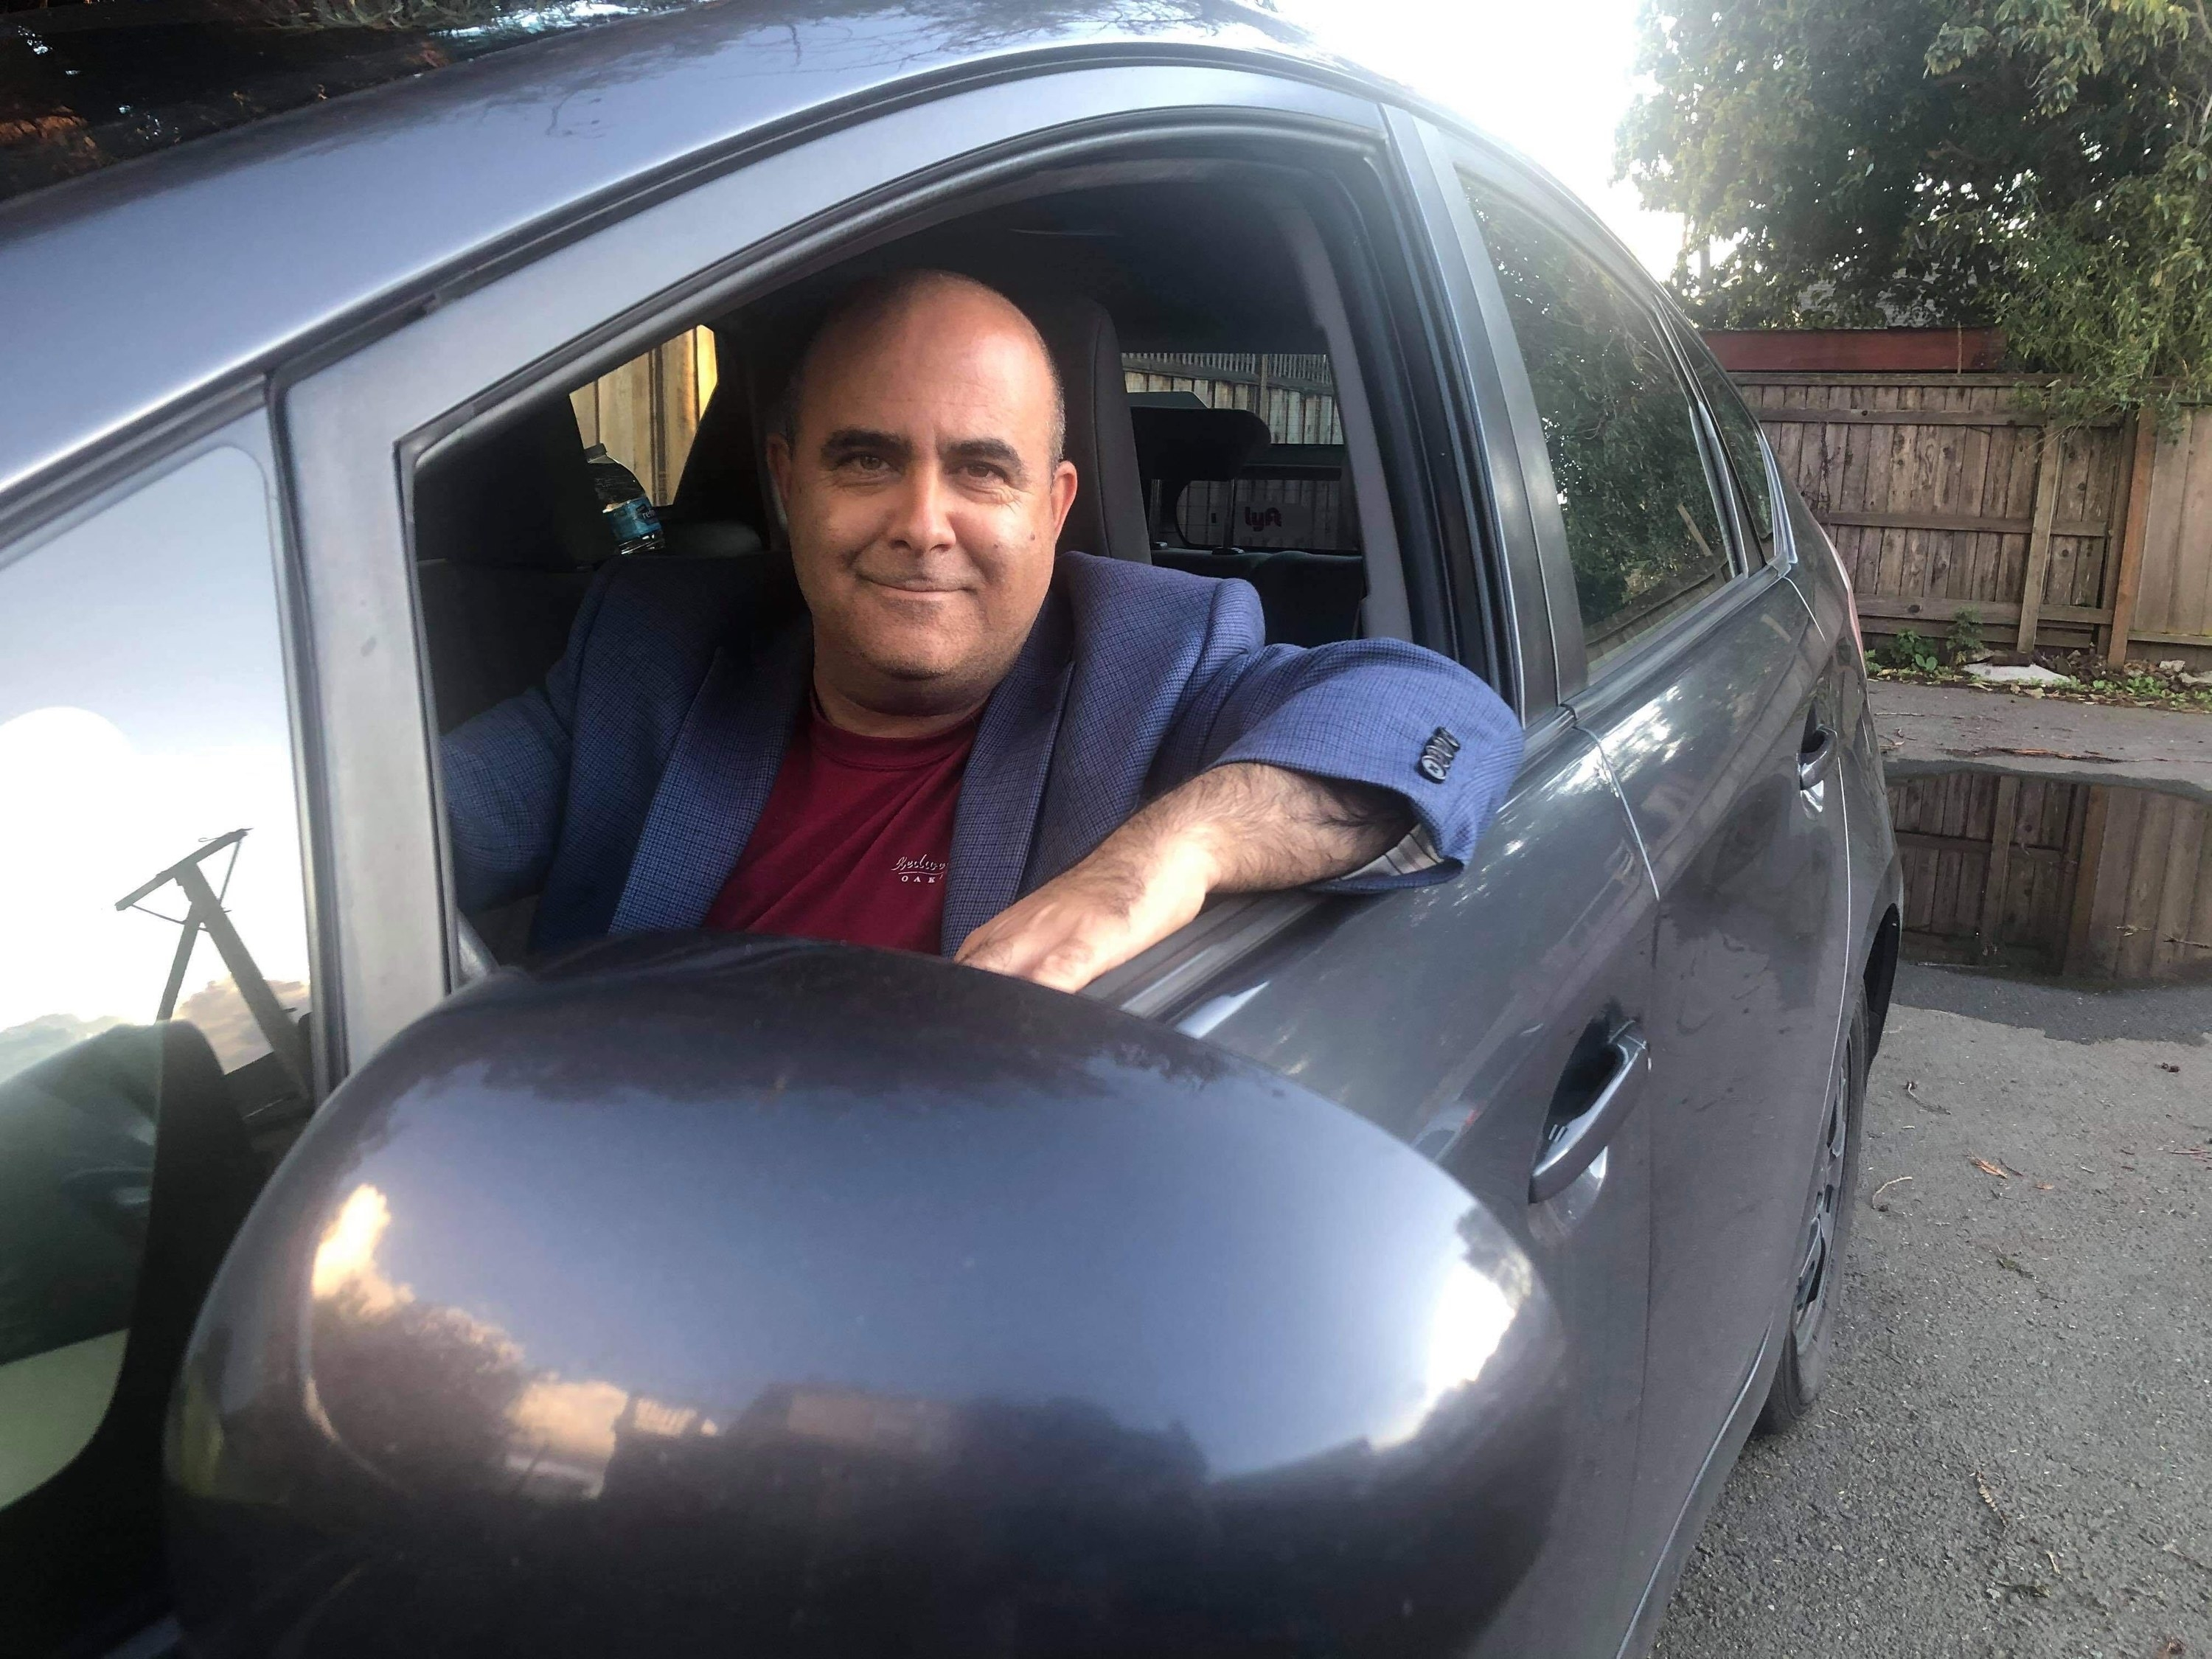 An Uber driver named Edan Alva sits in his car and smiles at the camera